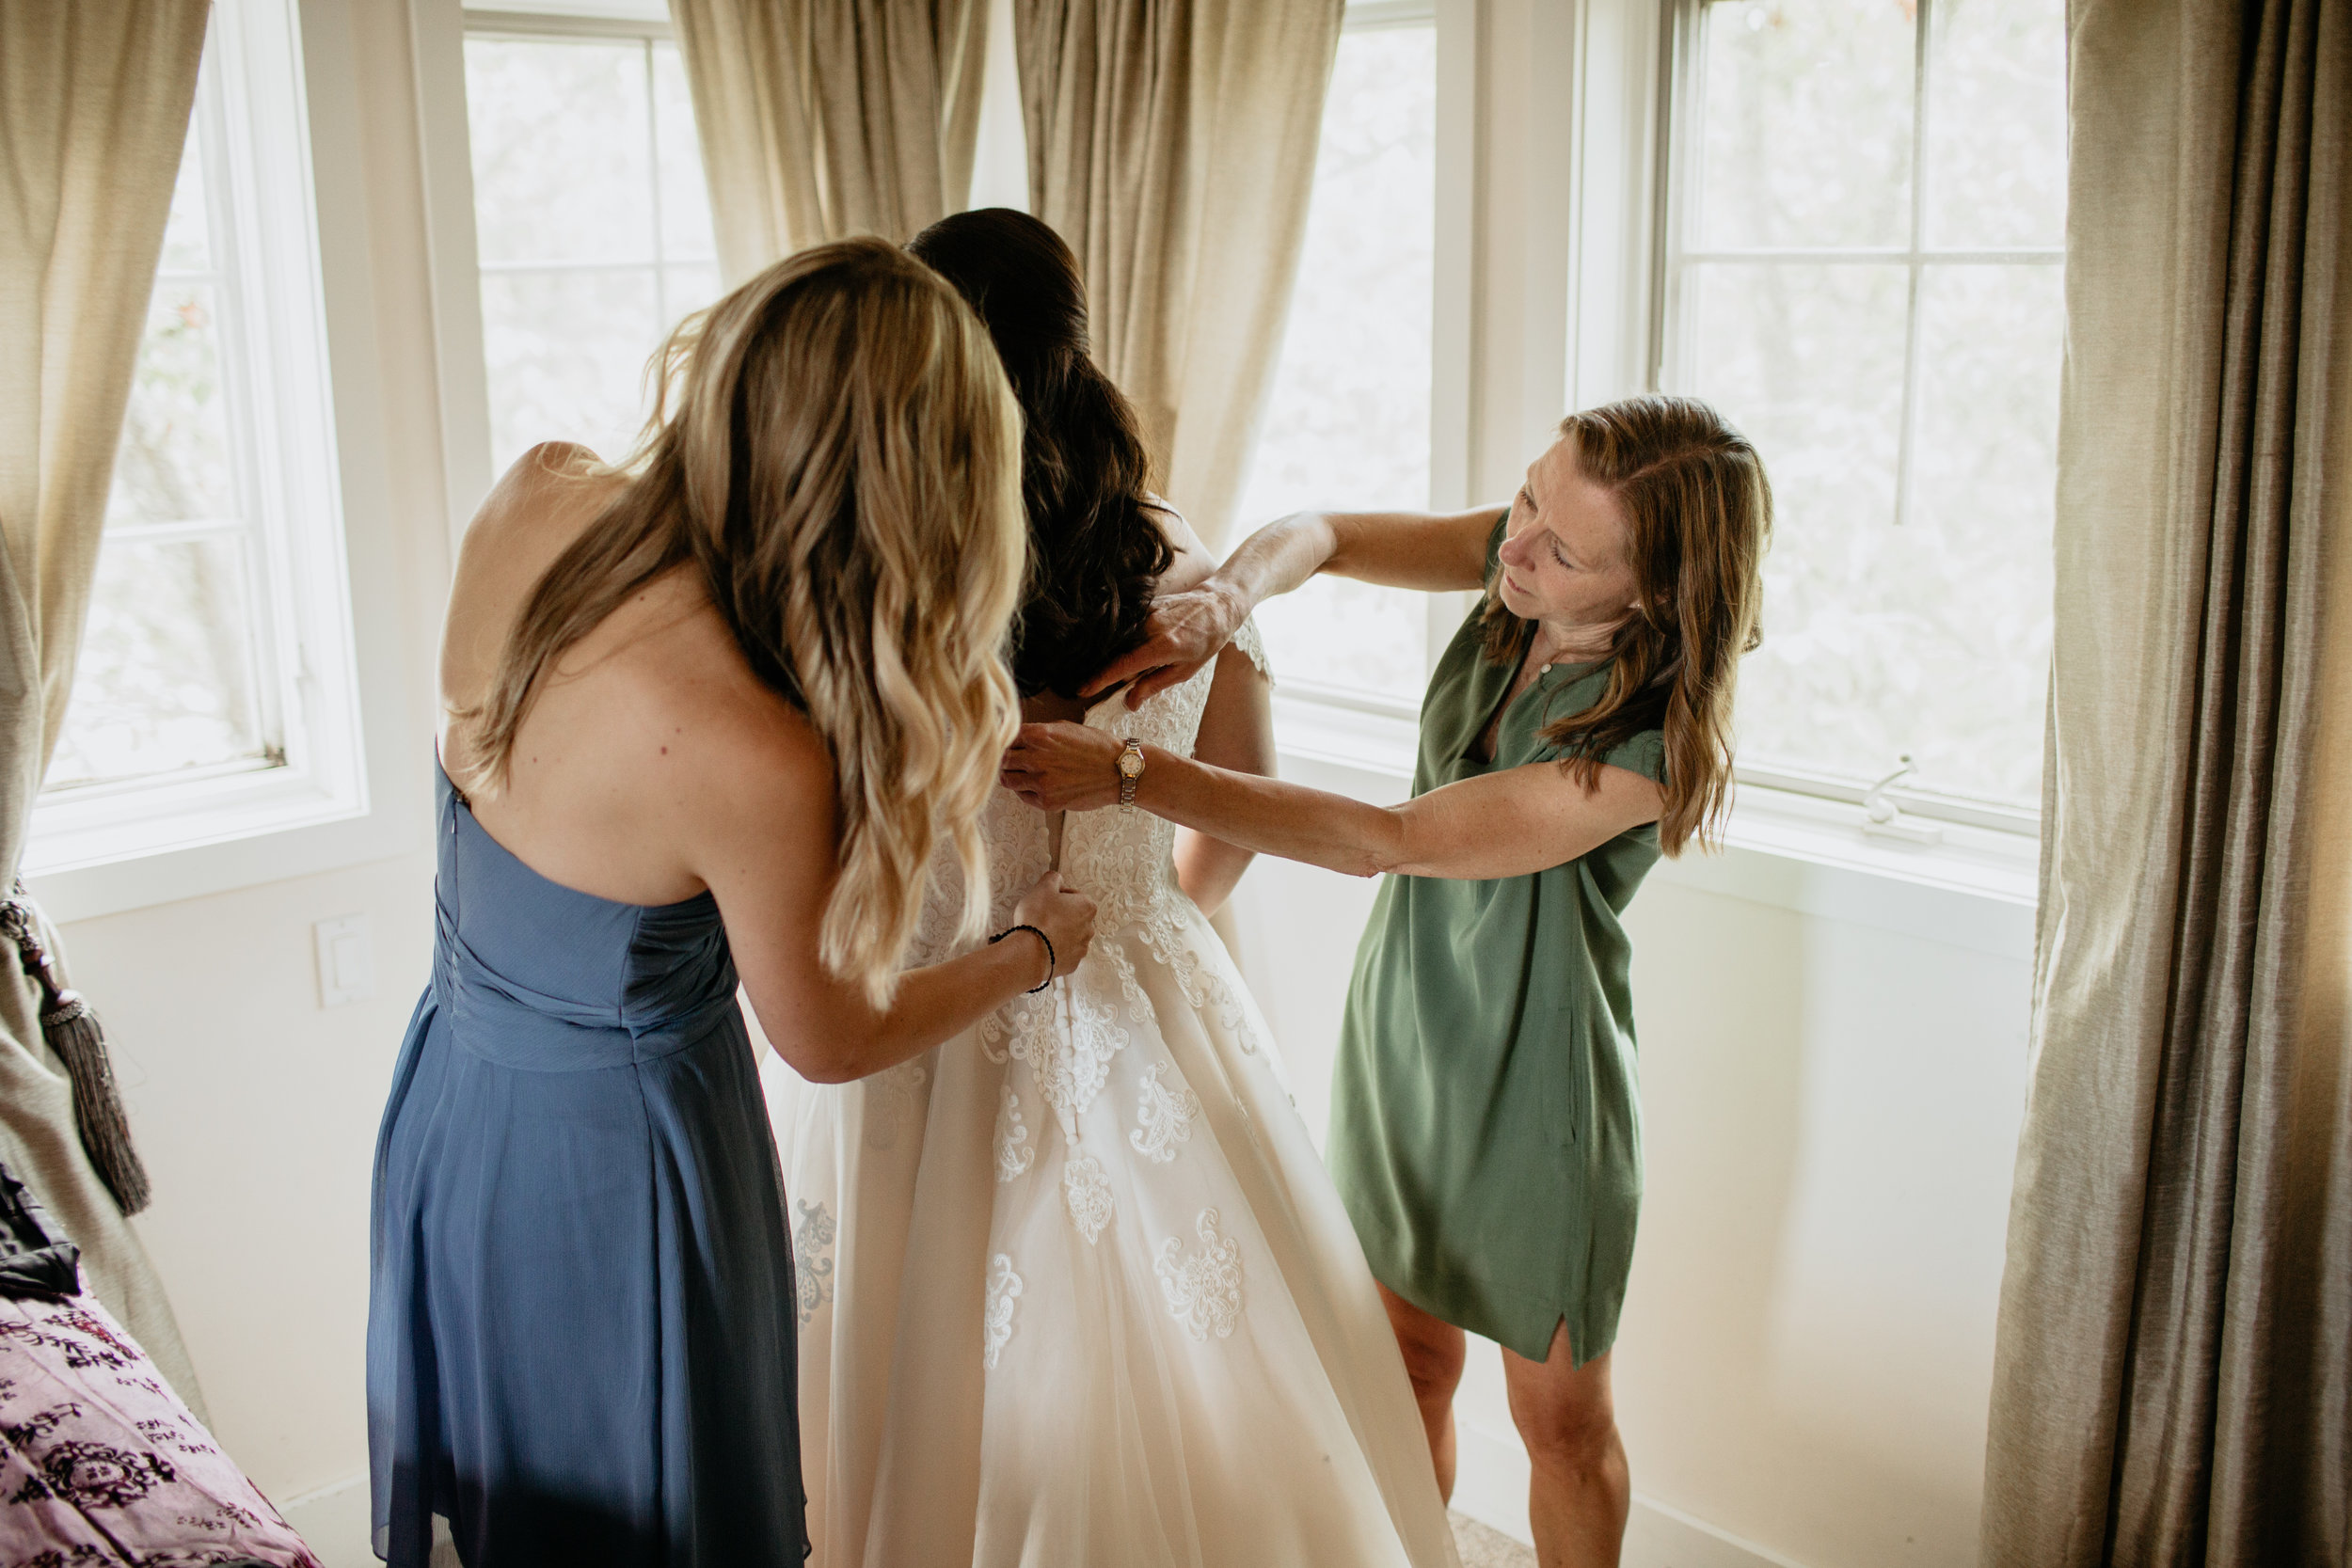 Justin took gorgeous pictures for my daughter's wedding. He was kind , patient , respectful and kept us all organized. Carli couldn't have picked a more perfect photographer for her special day. - -Liz